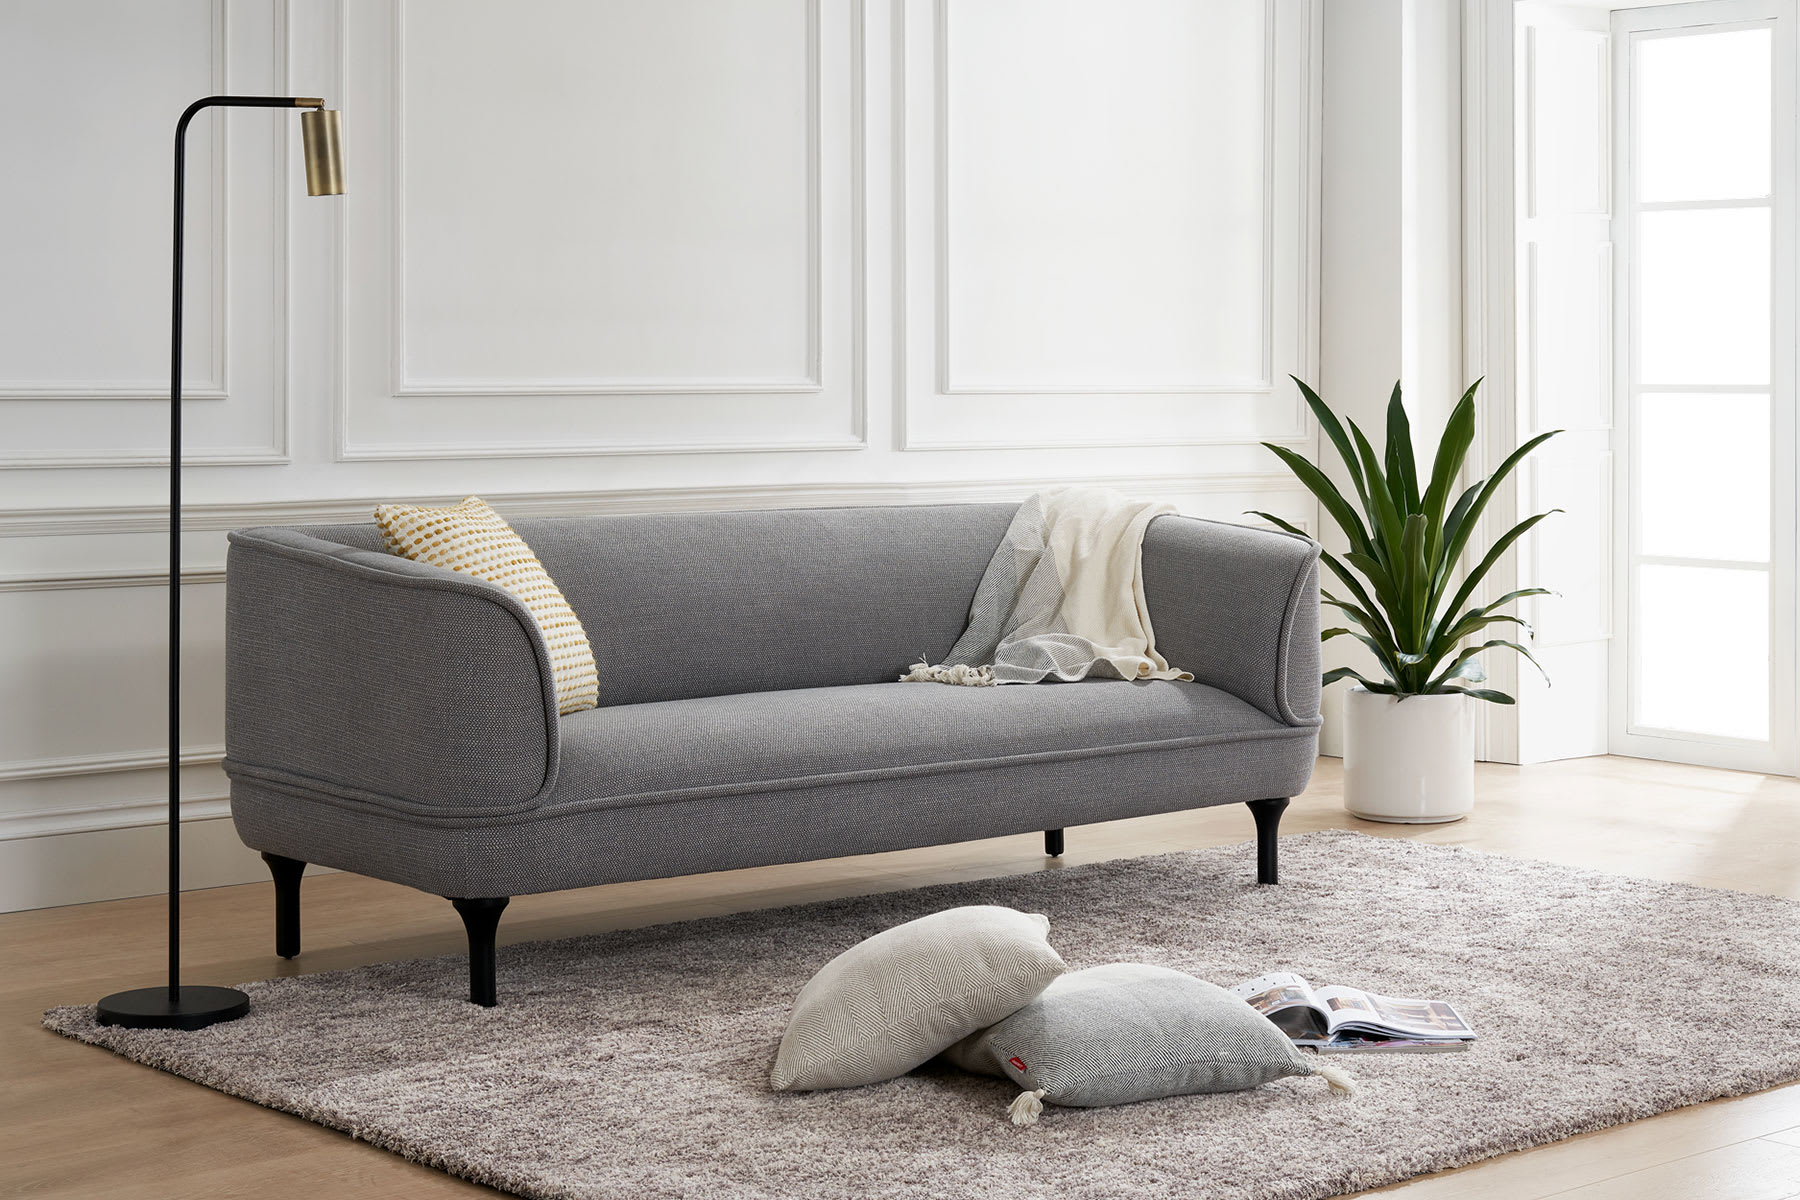 grey sofa in living room with rug, standing lamp, potted plant and cushions